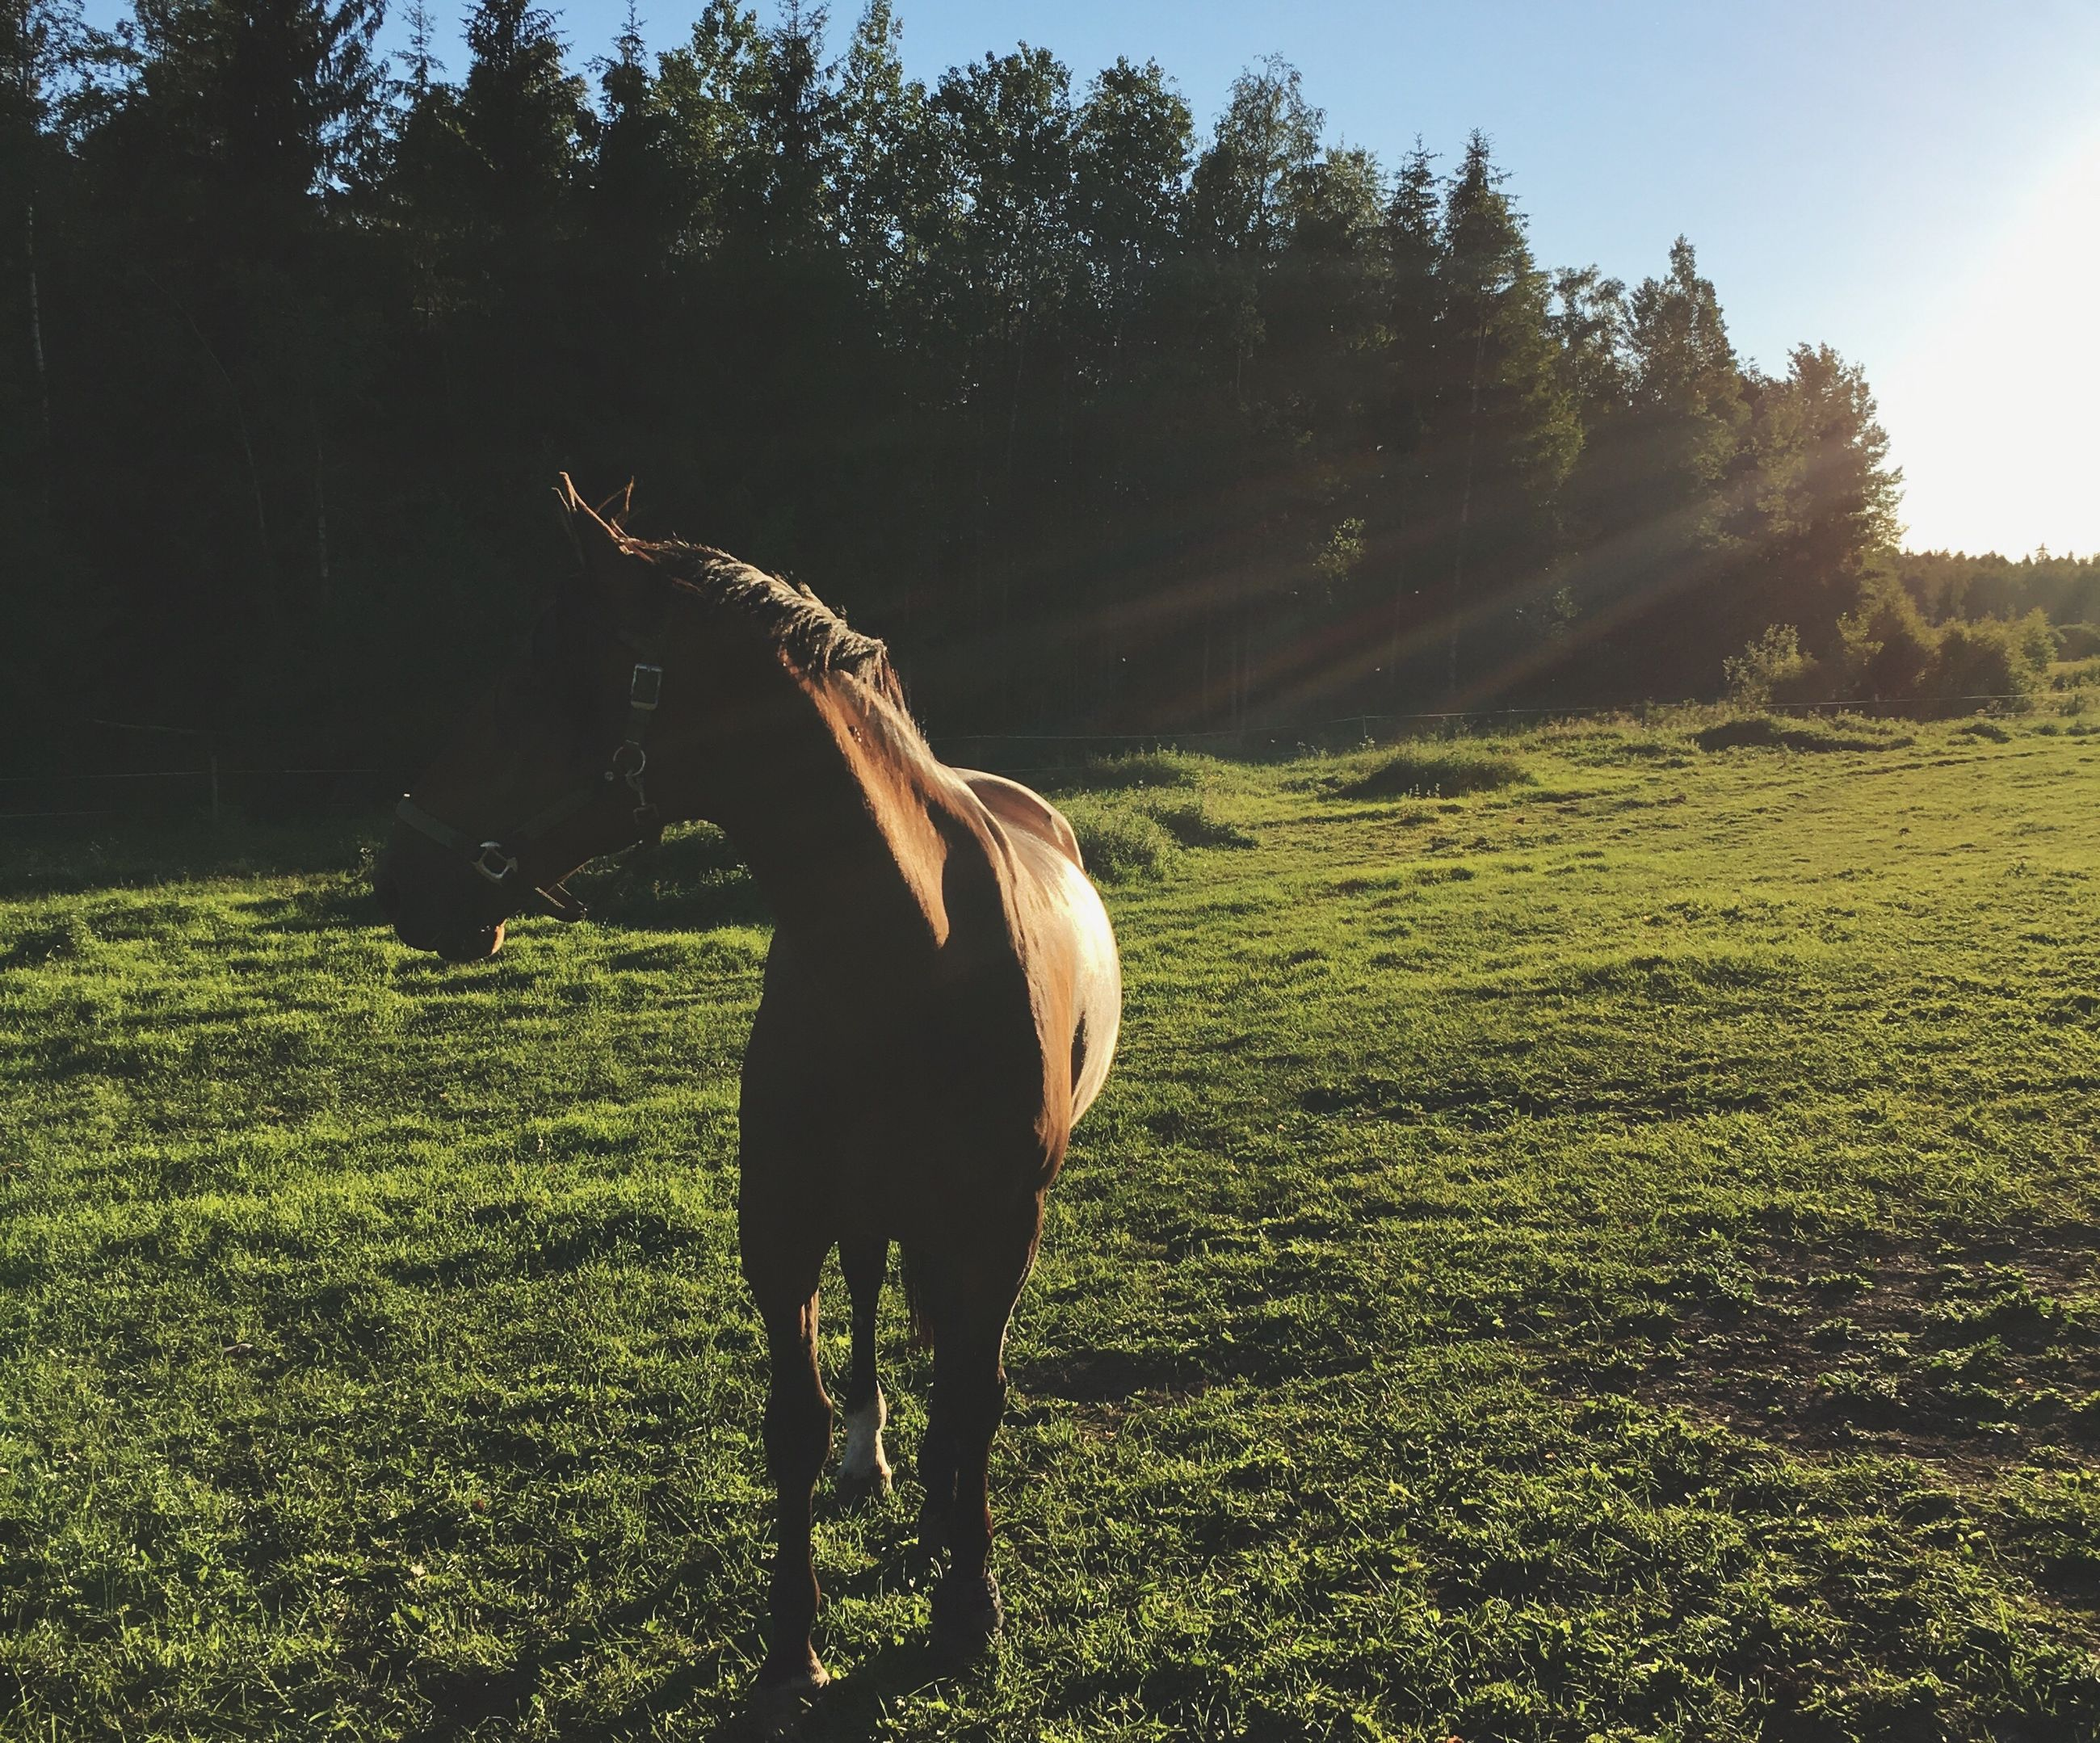 horse, domestic animals, field, animal themes, mammal, one animal, grass, tree, livestock, standing, nature, no people, outdoors, full length, grazing, day, landscape, beauty in nature, sky